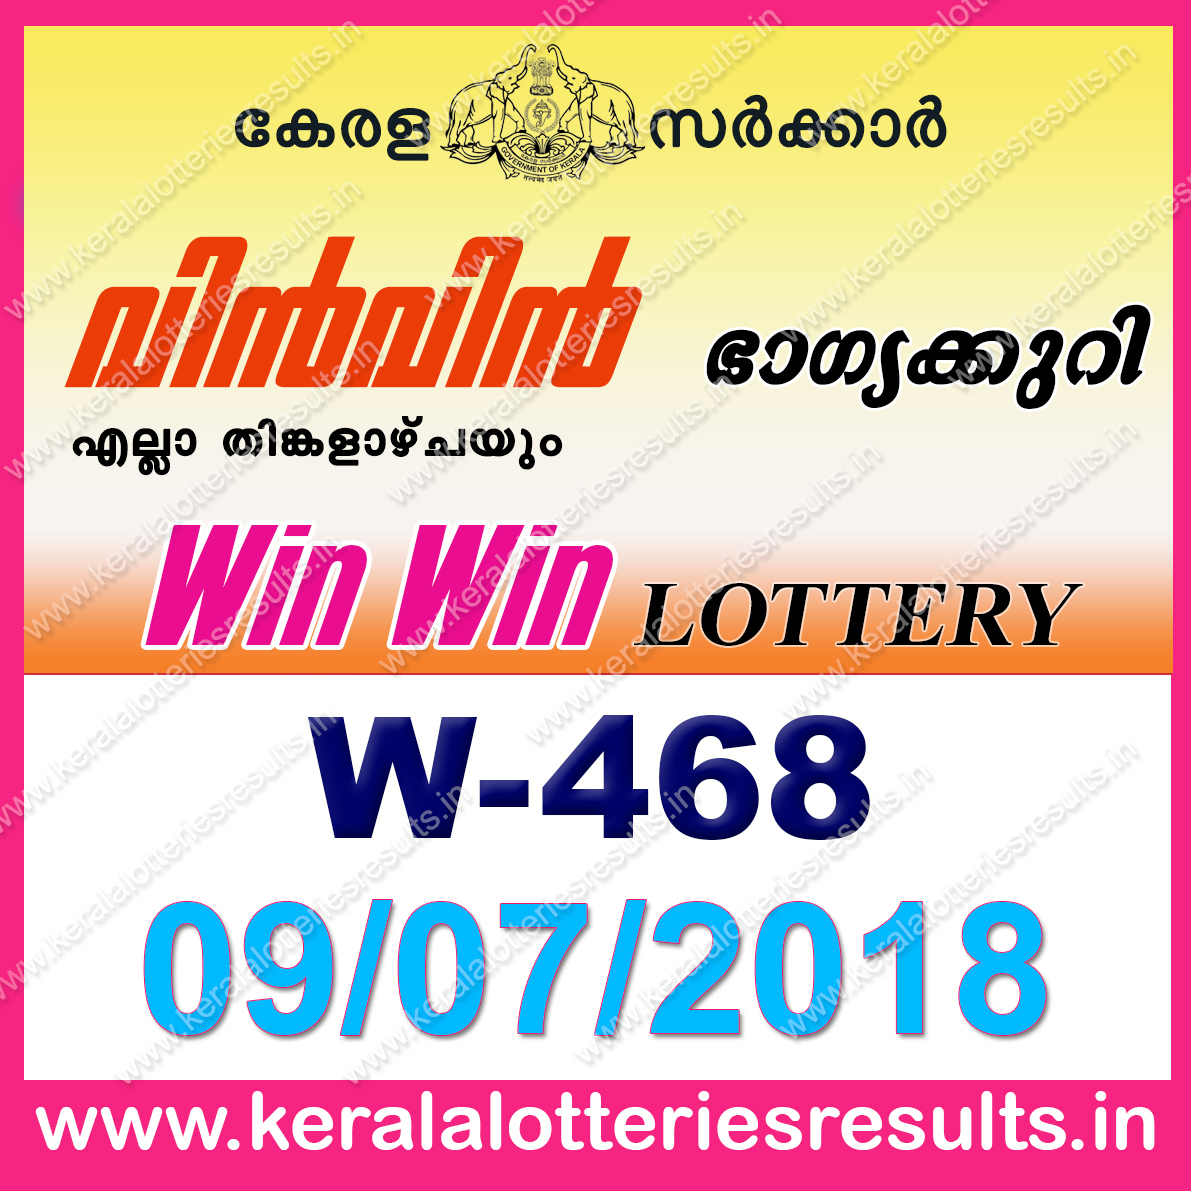 Kerala lottery results tomorrow is monday